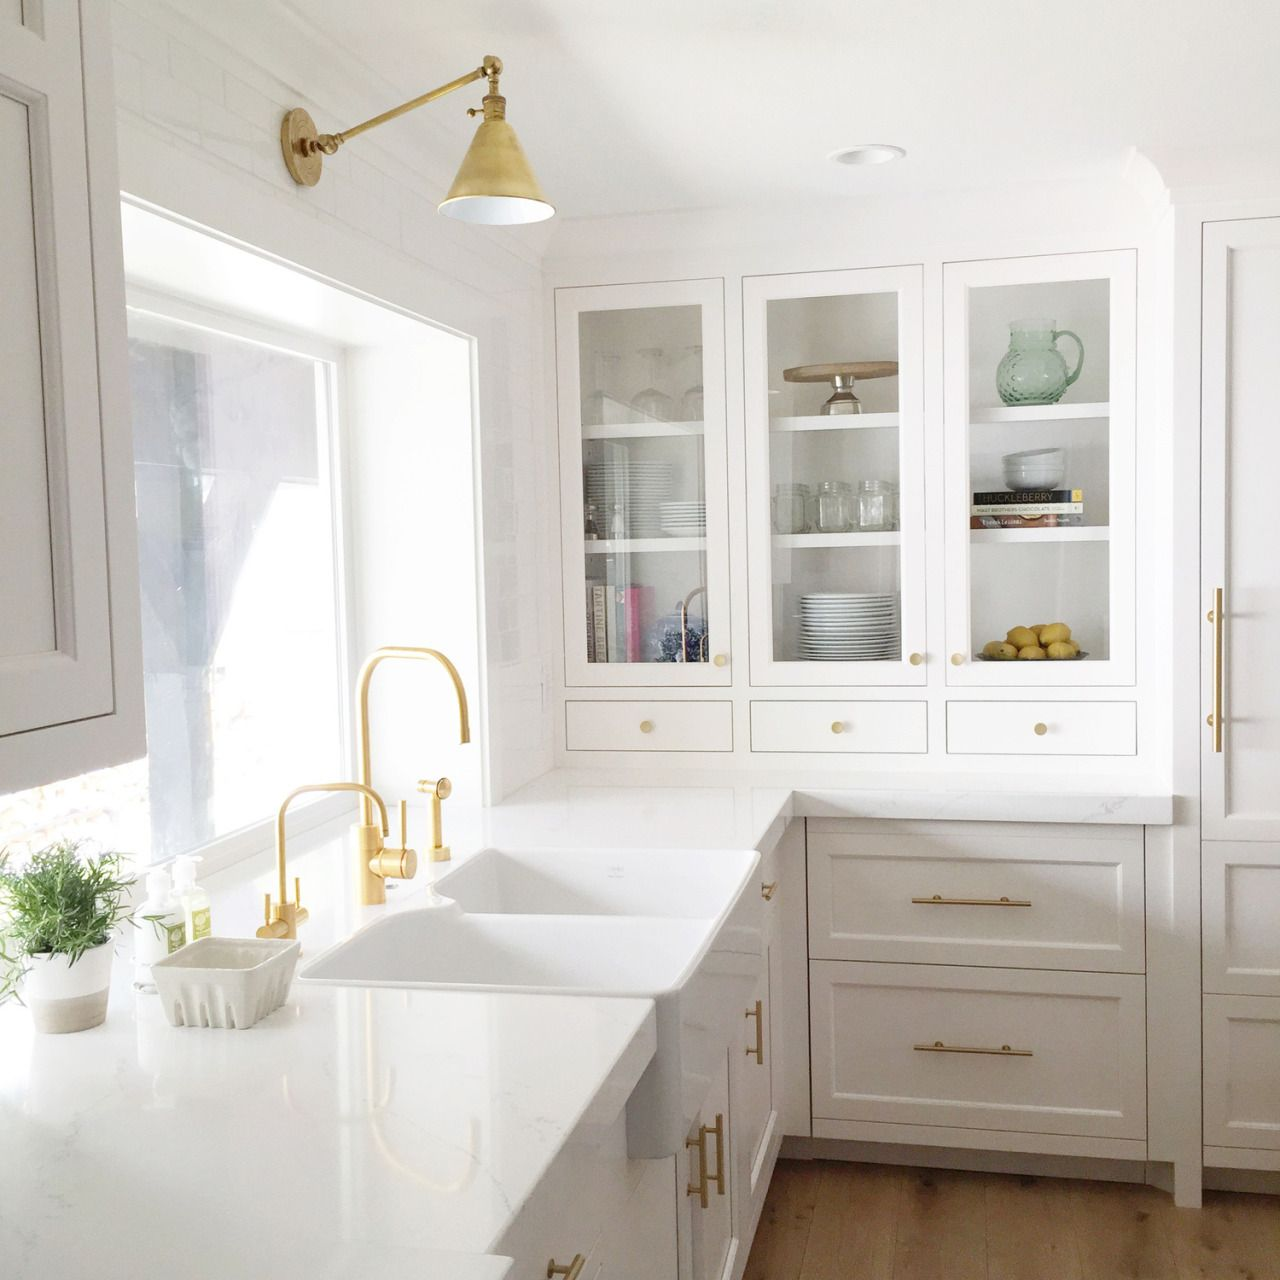 gold kitchen chairs pin by christina earle on love pinterest evars anderson kicthen with hardware astral riles brass handles